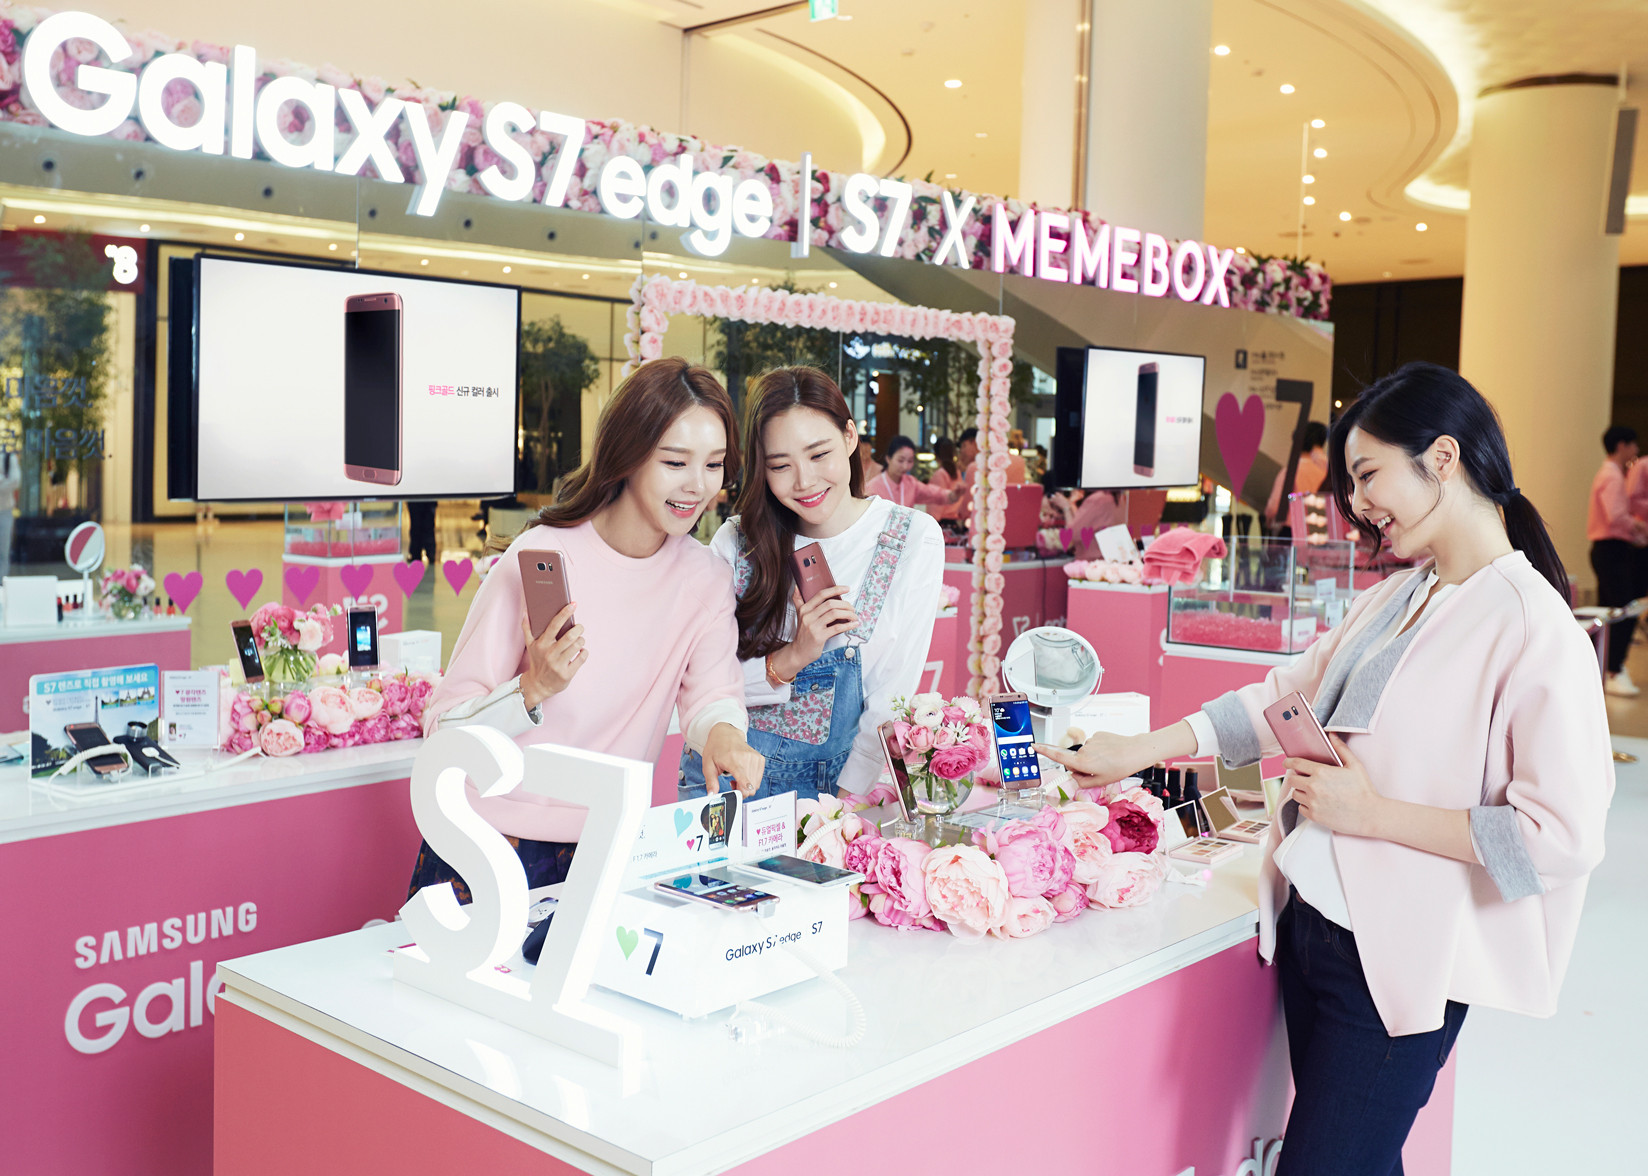 1461129856_samsung-galaxy-s7-and-s7-edge-in-pink-gold-4.jpg